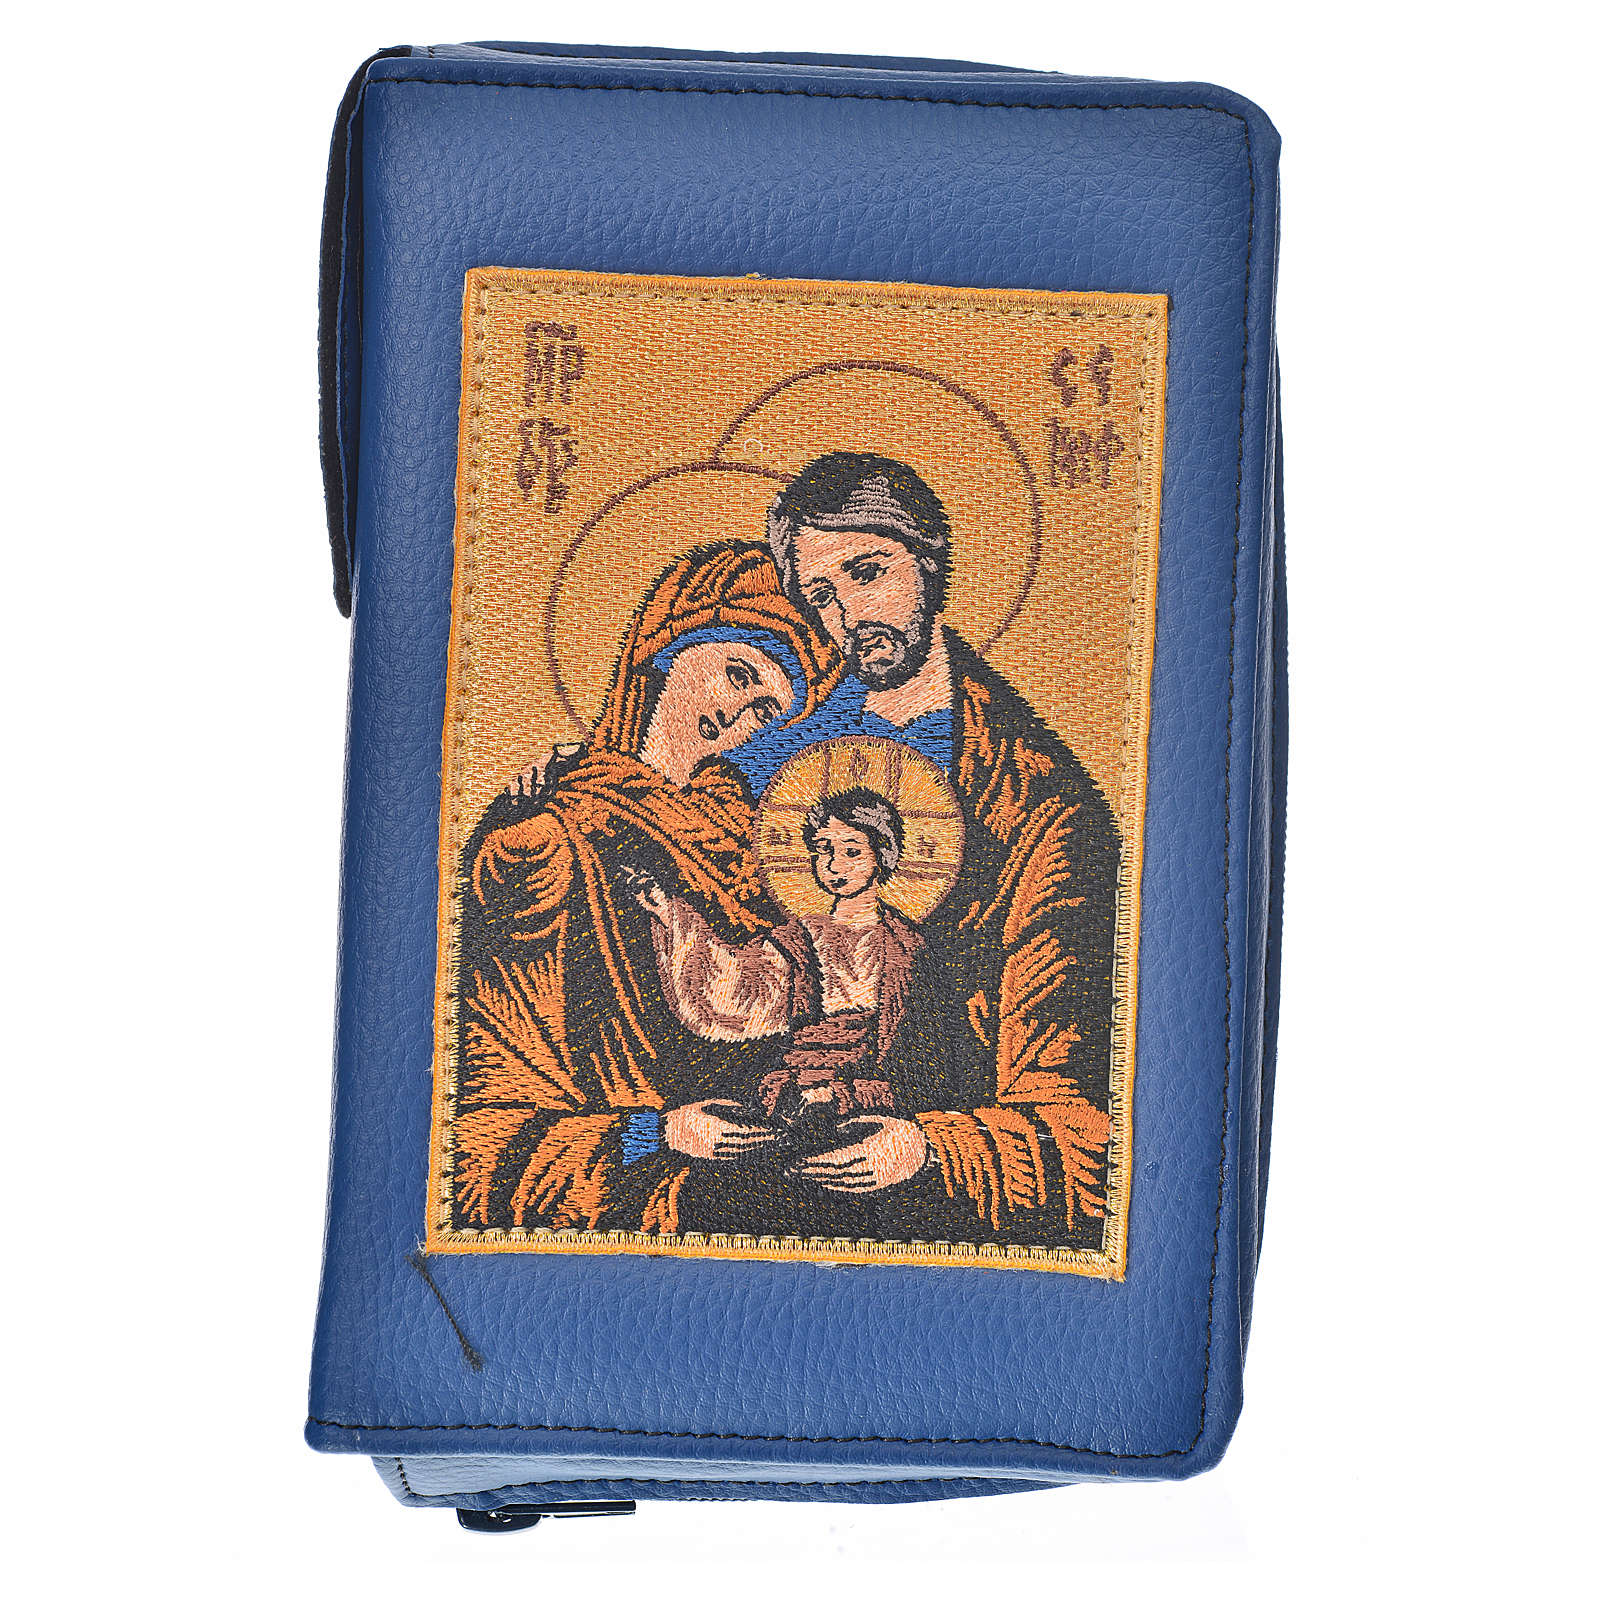 Hardcover New Jerusalem Bible blue bonded leather Holy Family image 4